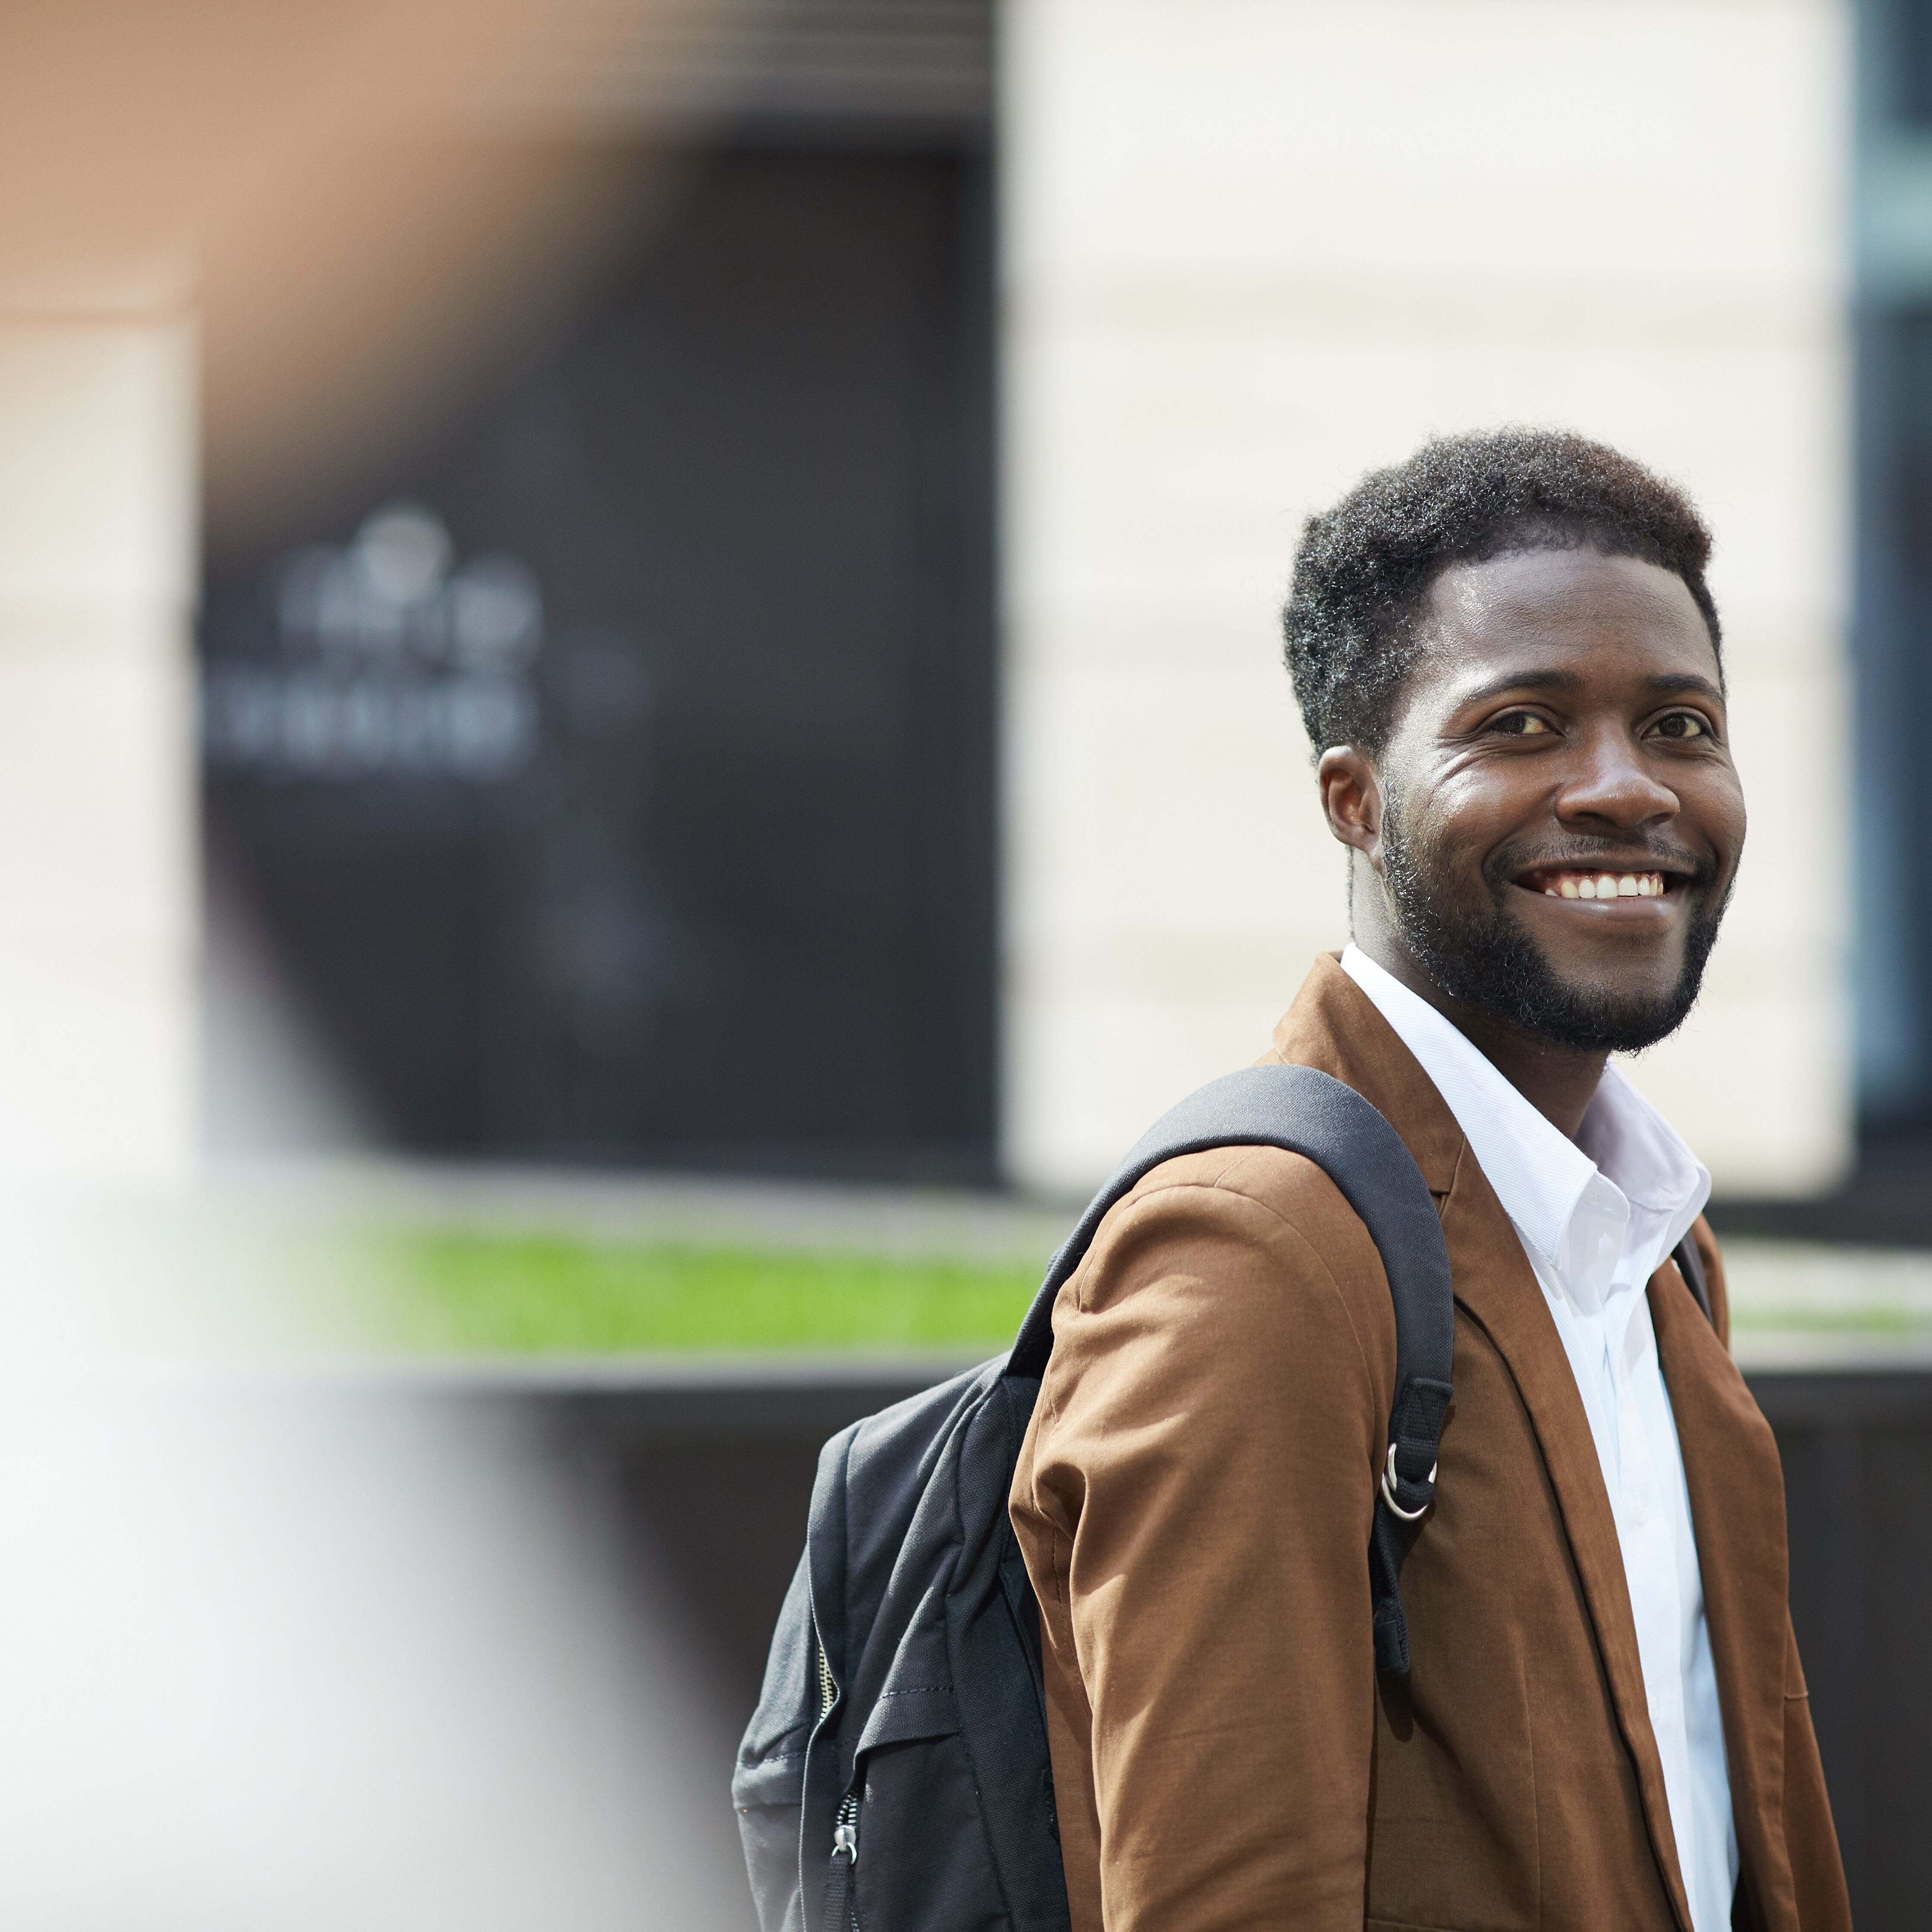 Waist up portrait of young African-American man smiling happily at camera while standing outdoors ion city street, copy space